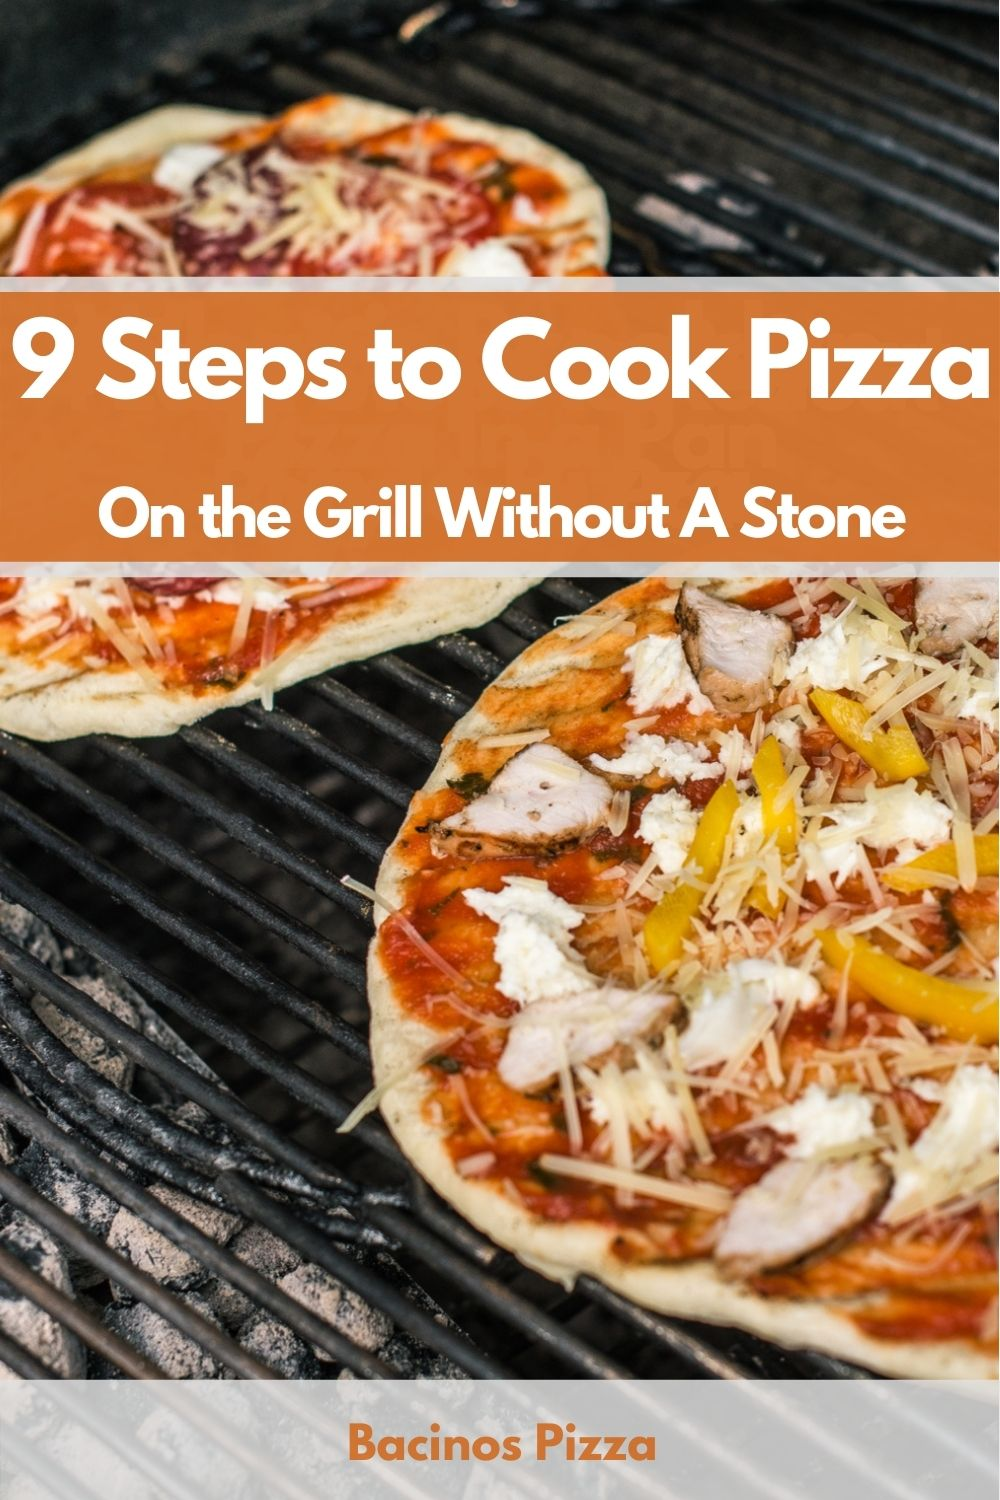 9 Steps to Cook Pizza On the Grill Without A Stone pin 2